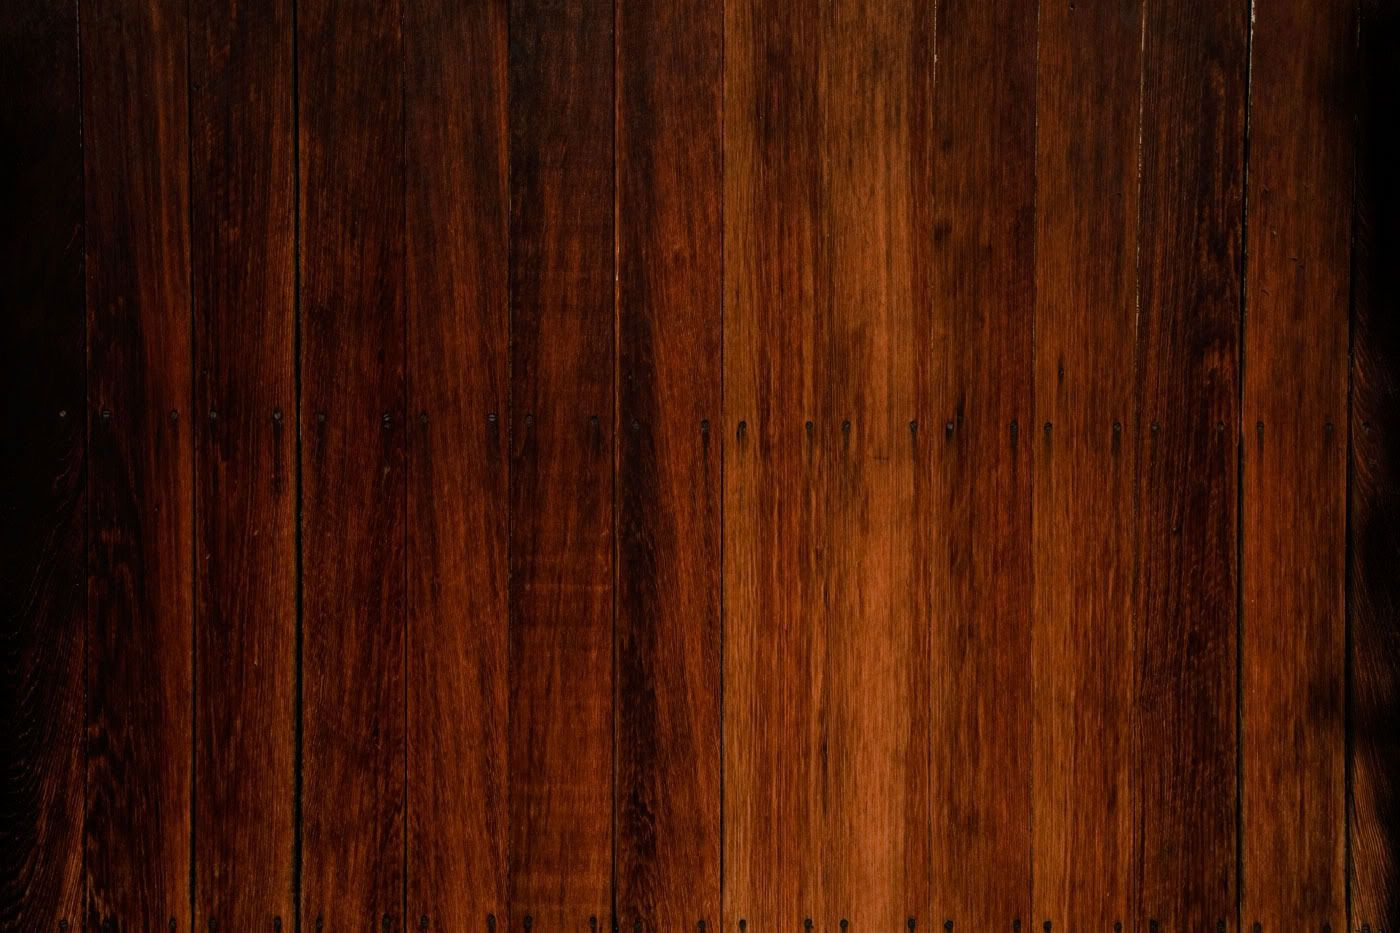 Wood Panel Background Image